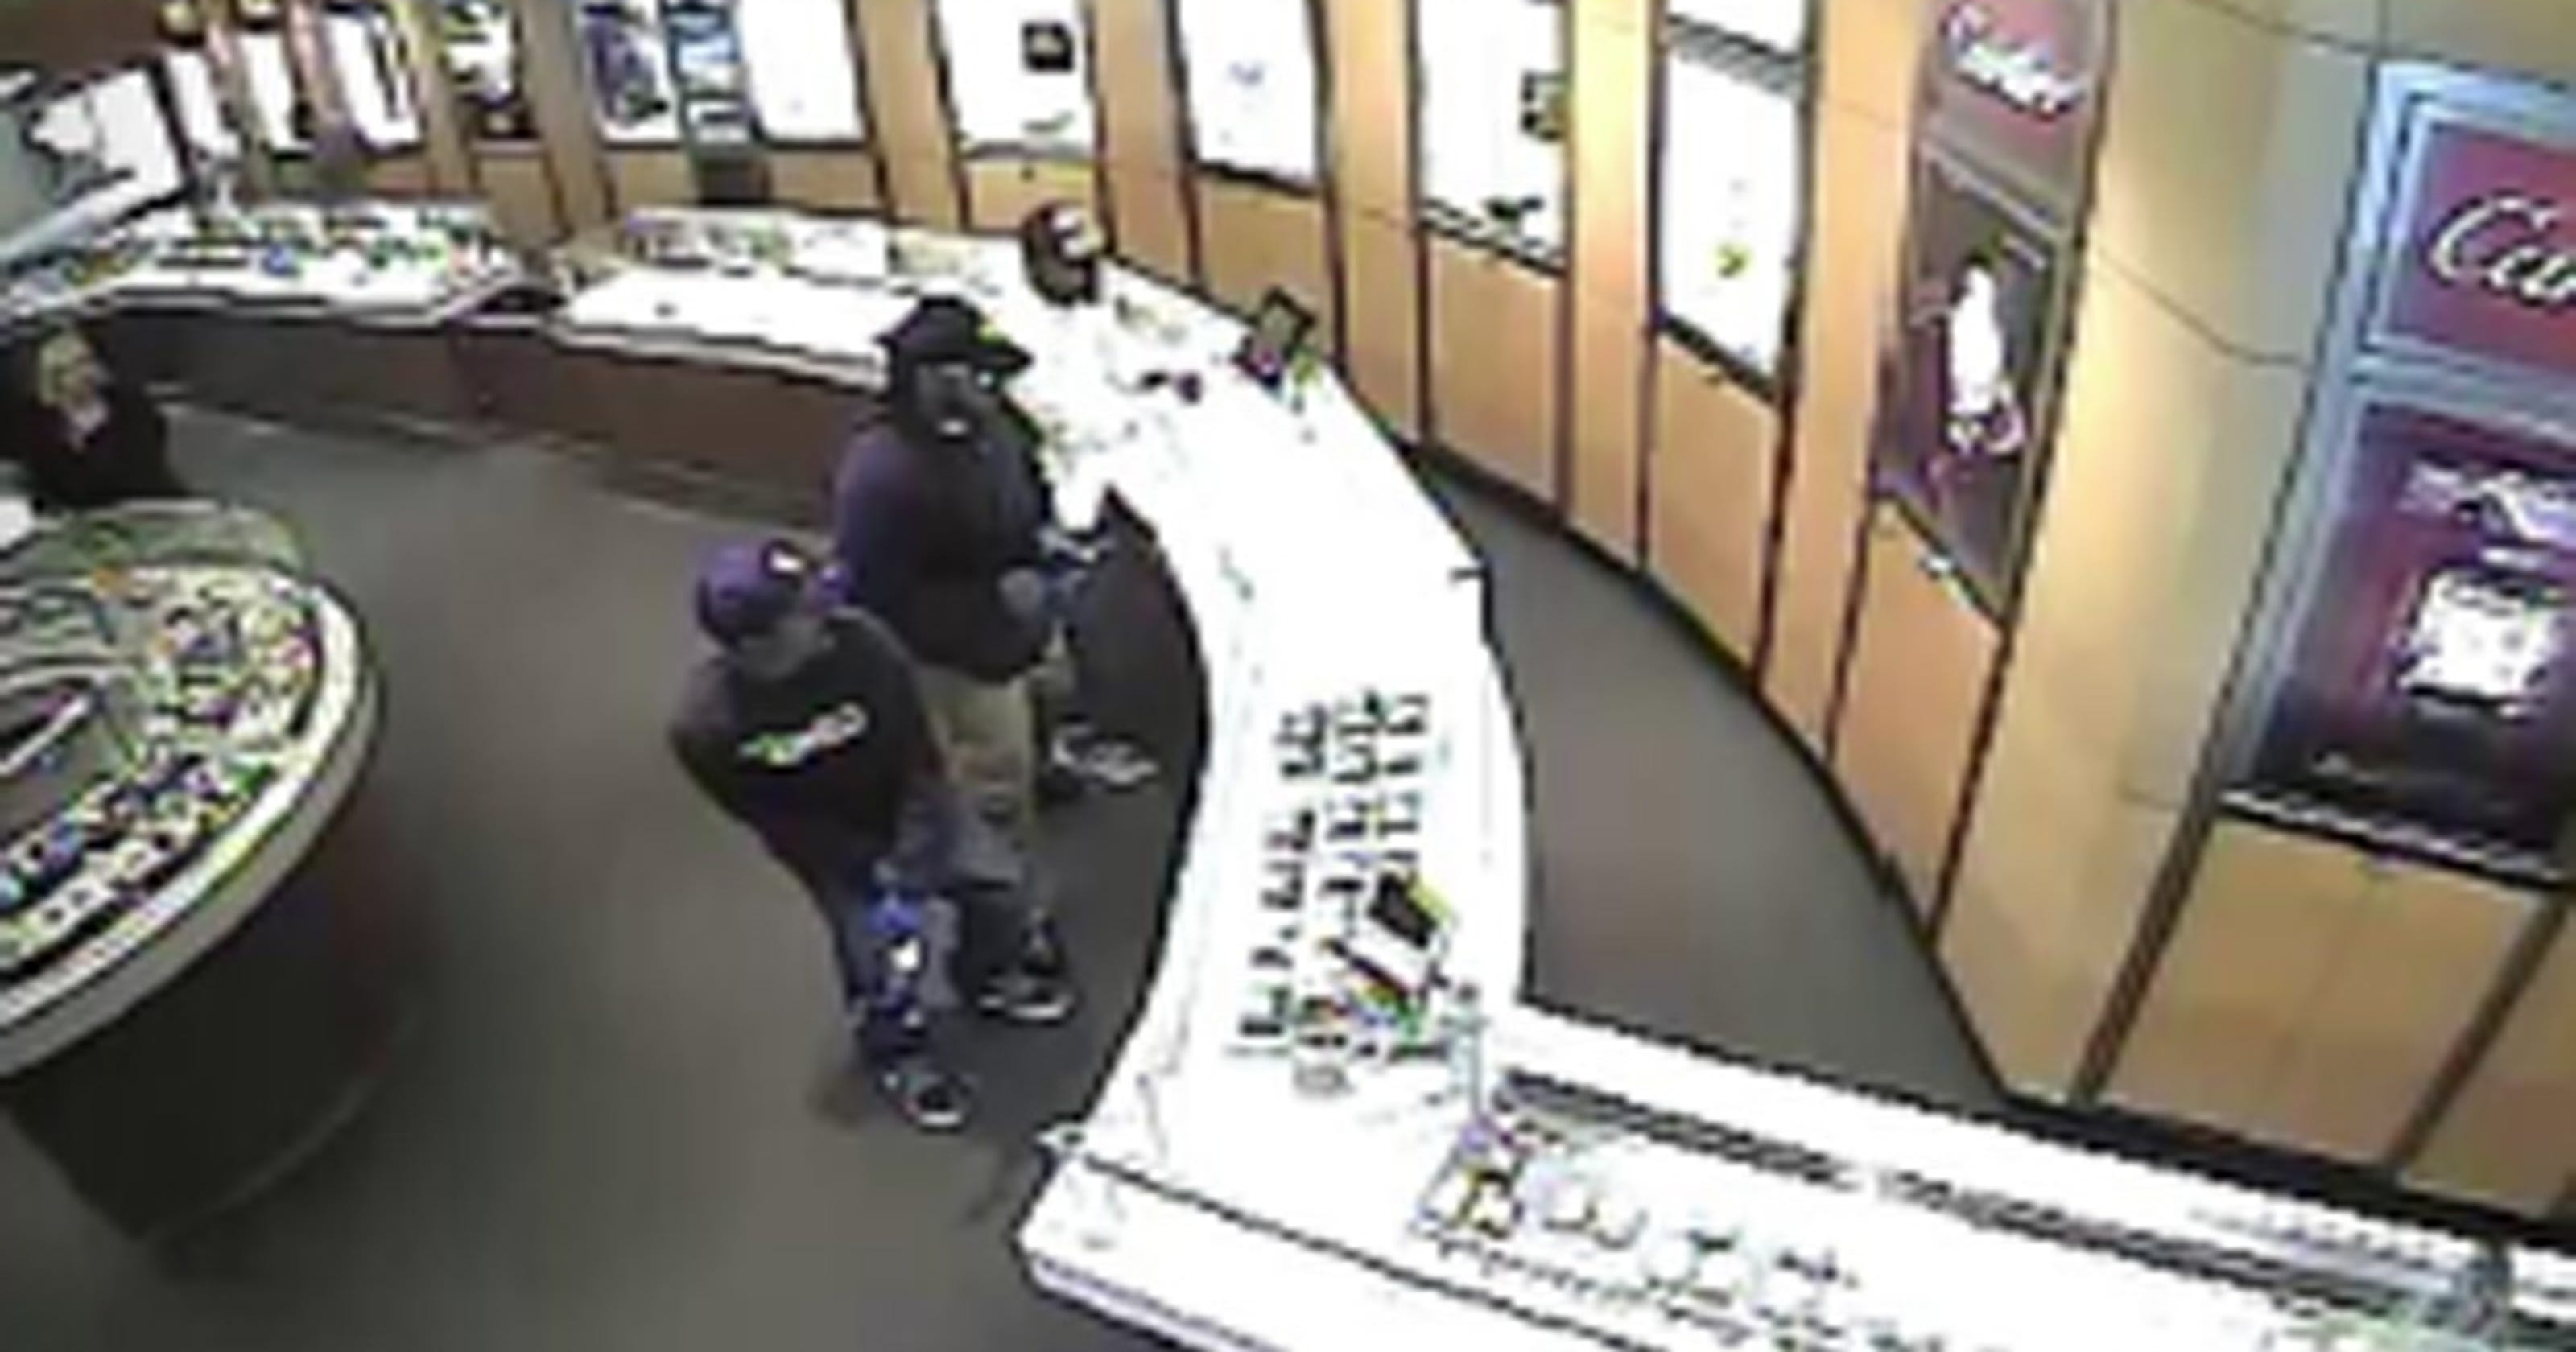 Tourneau robbery video: Watch the watch theft